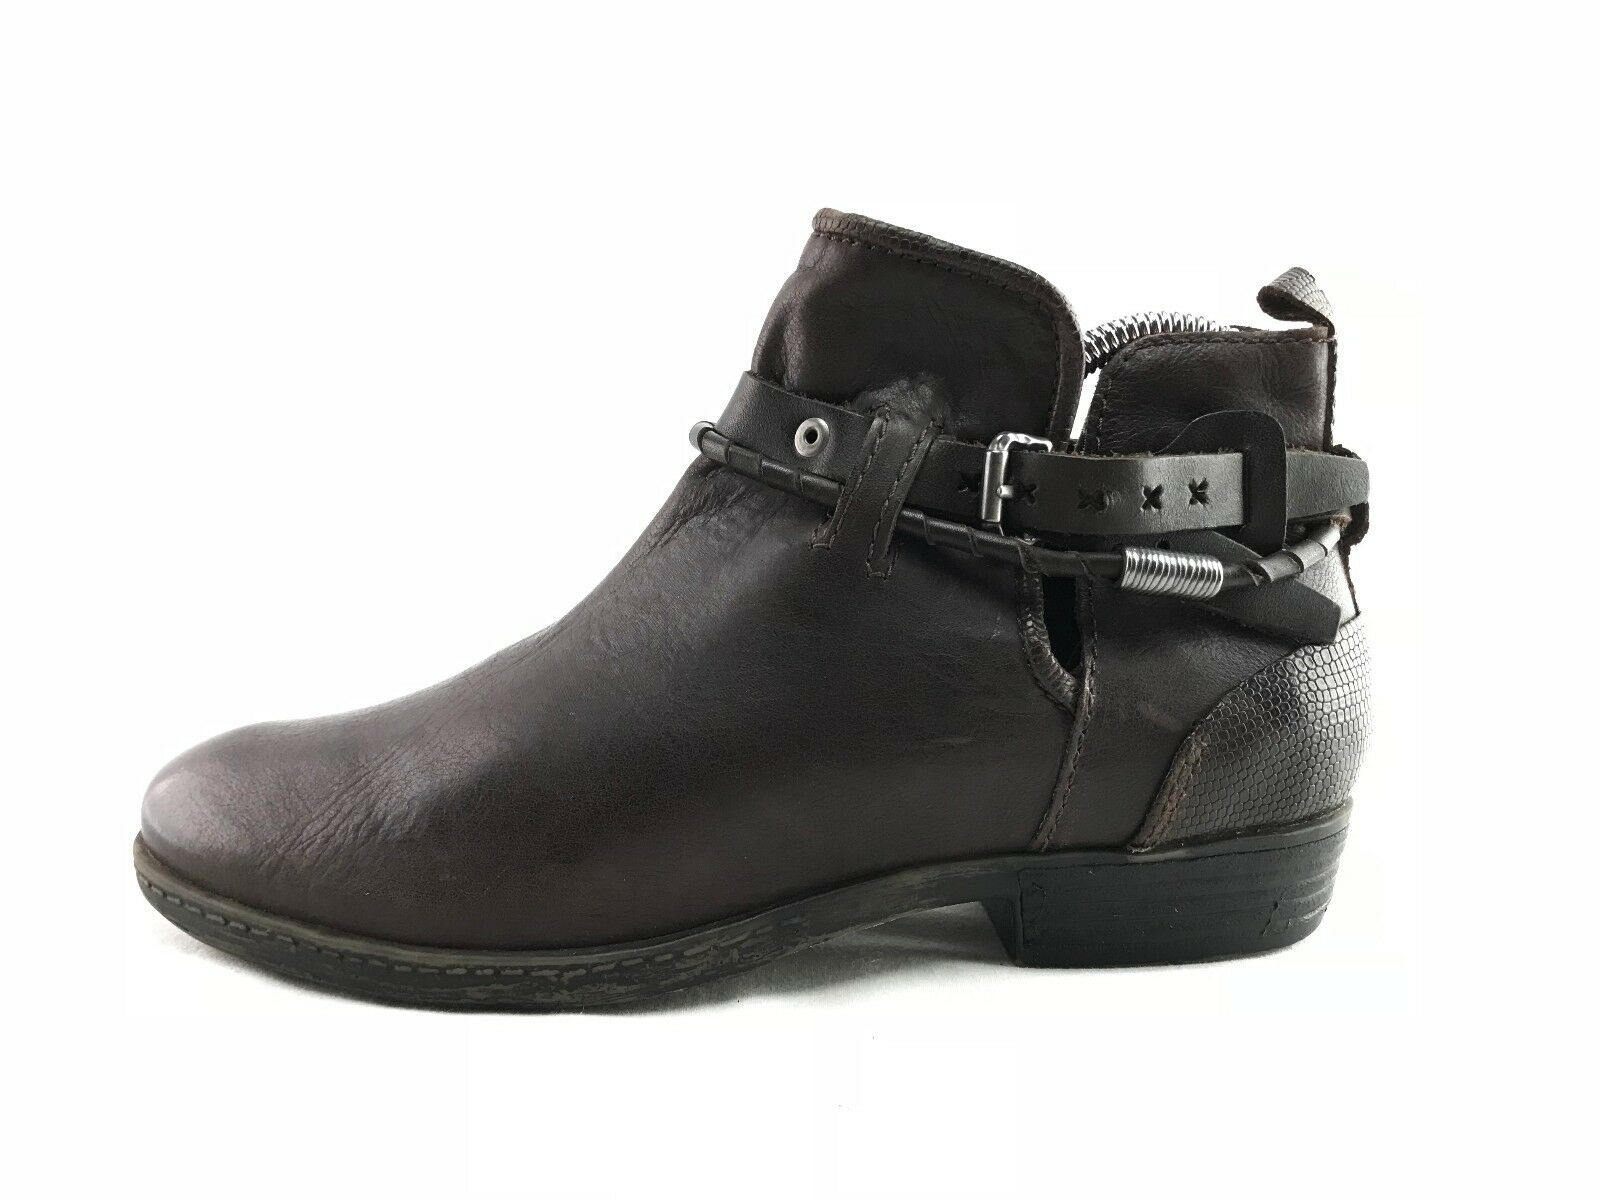 OTBT OTBT OTBT Low Rider Women's Brown Leather Slip On Ankle Boots US 7.5 M B905 23e6e6